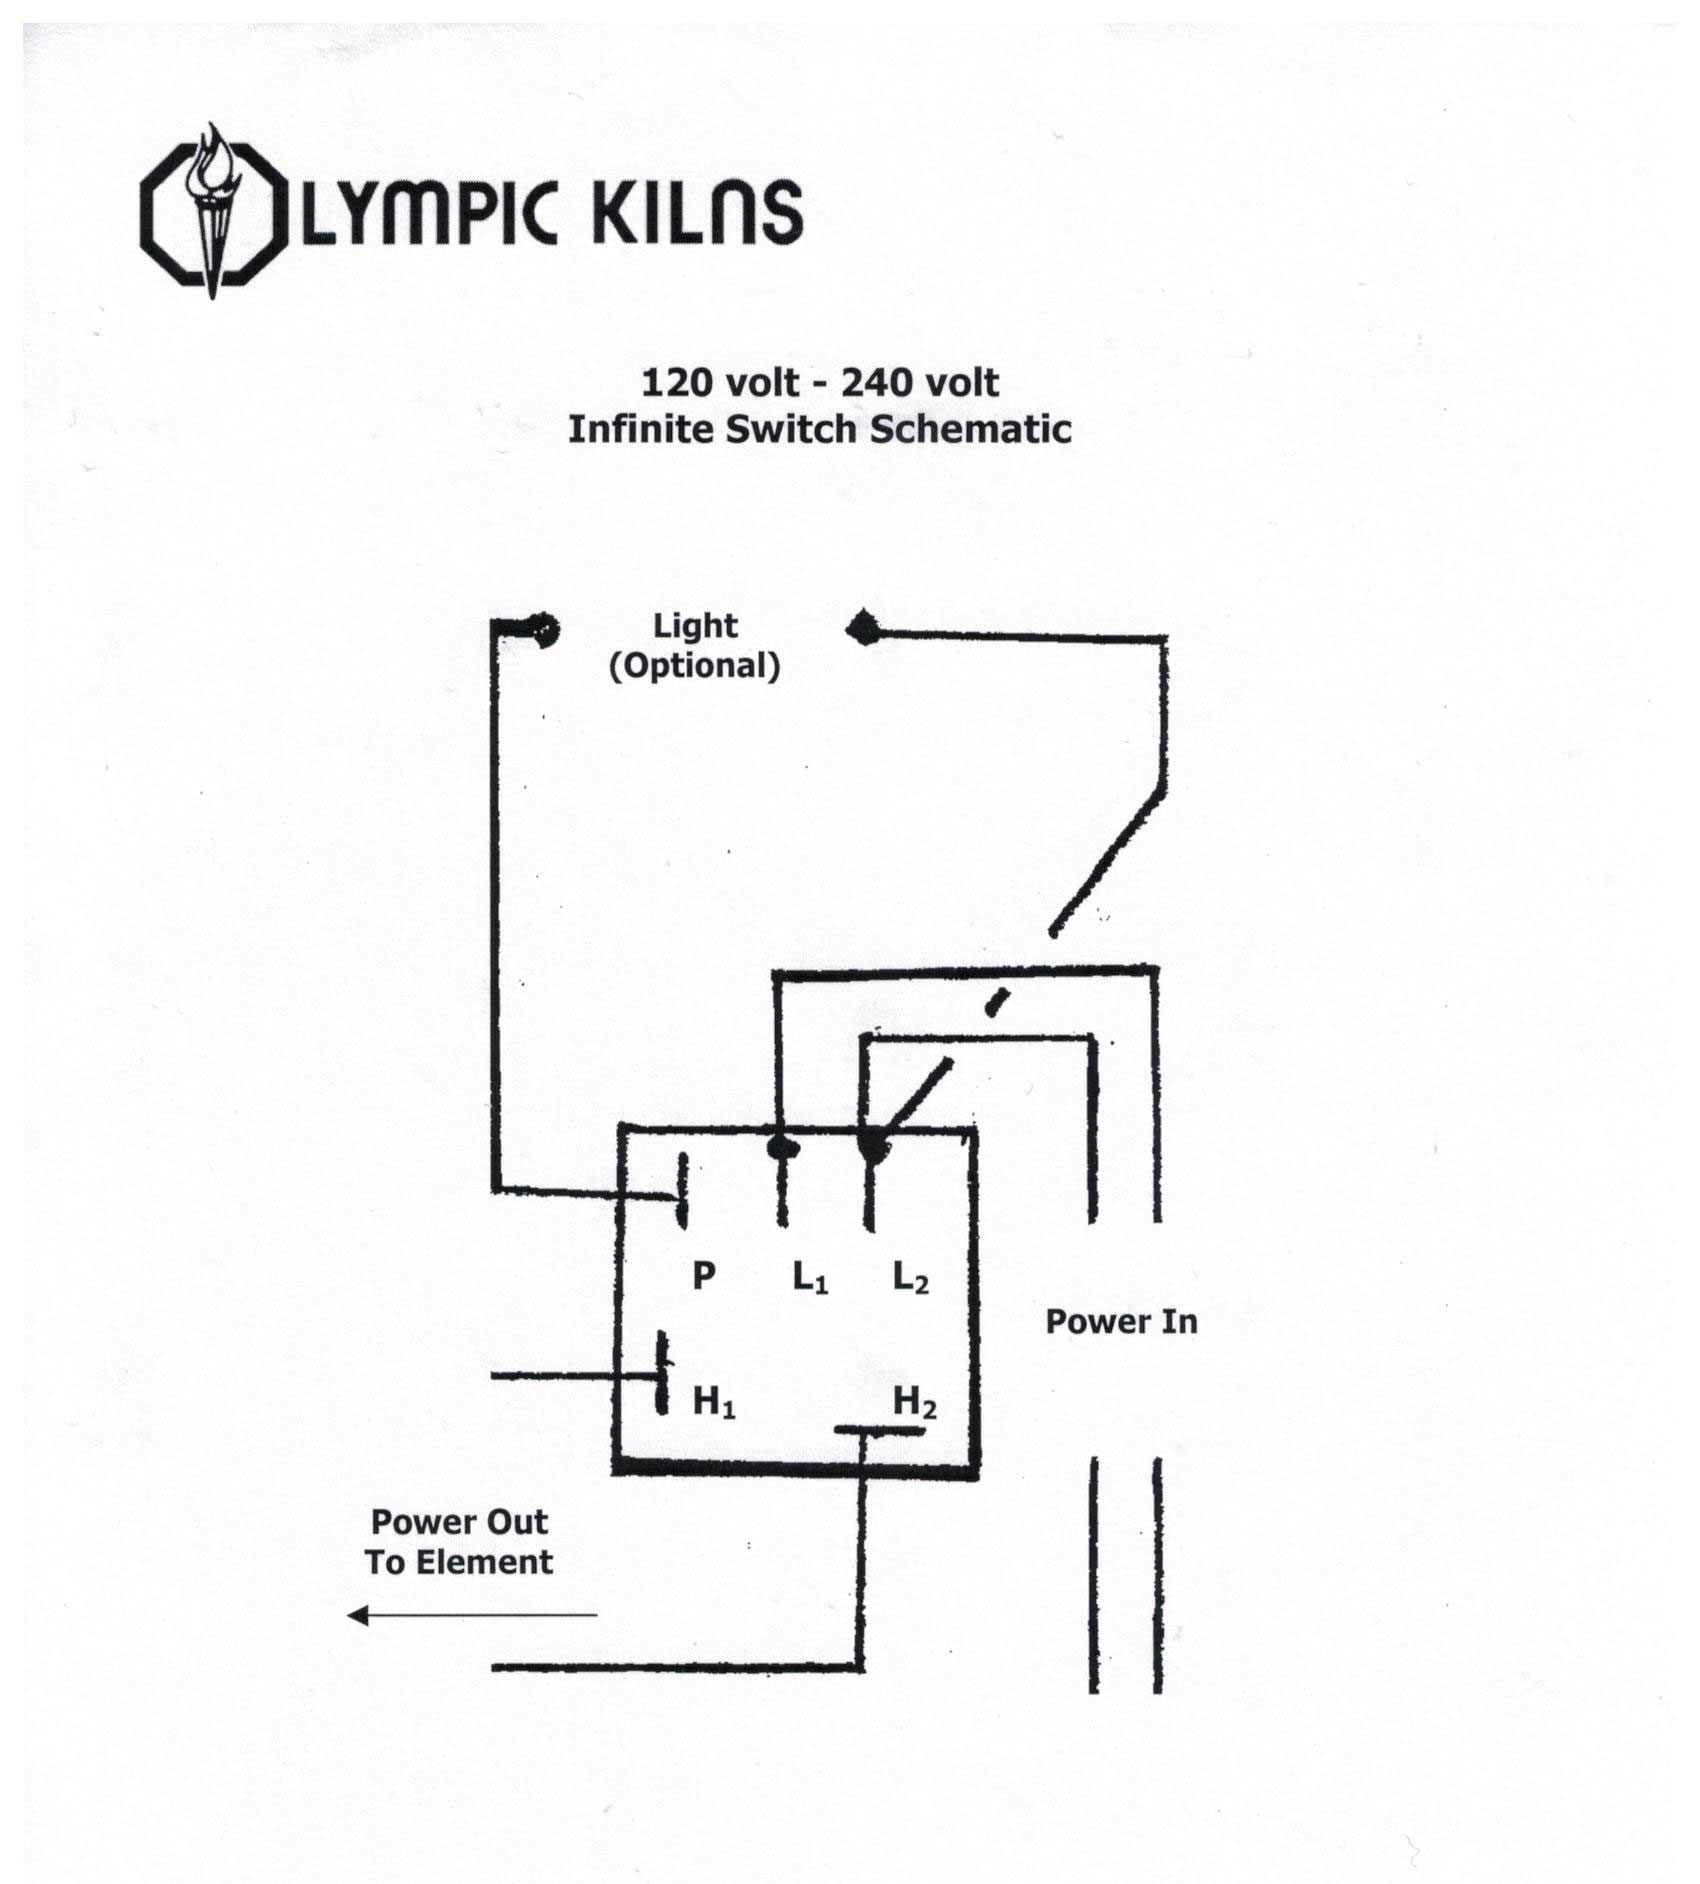 duncan kiln wiring diagram 1986 chevy truck all generic parts of high quality clay king com schematic